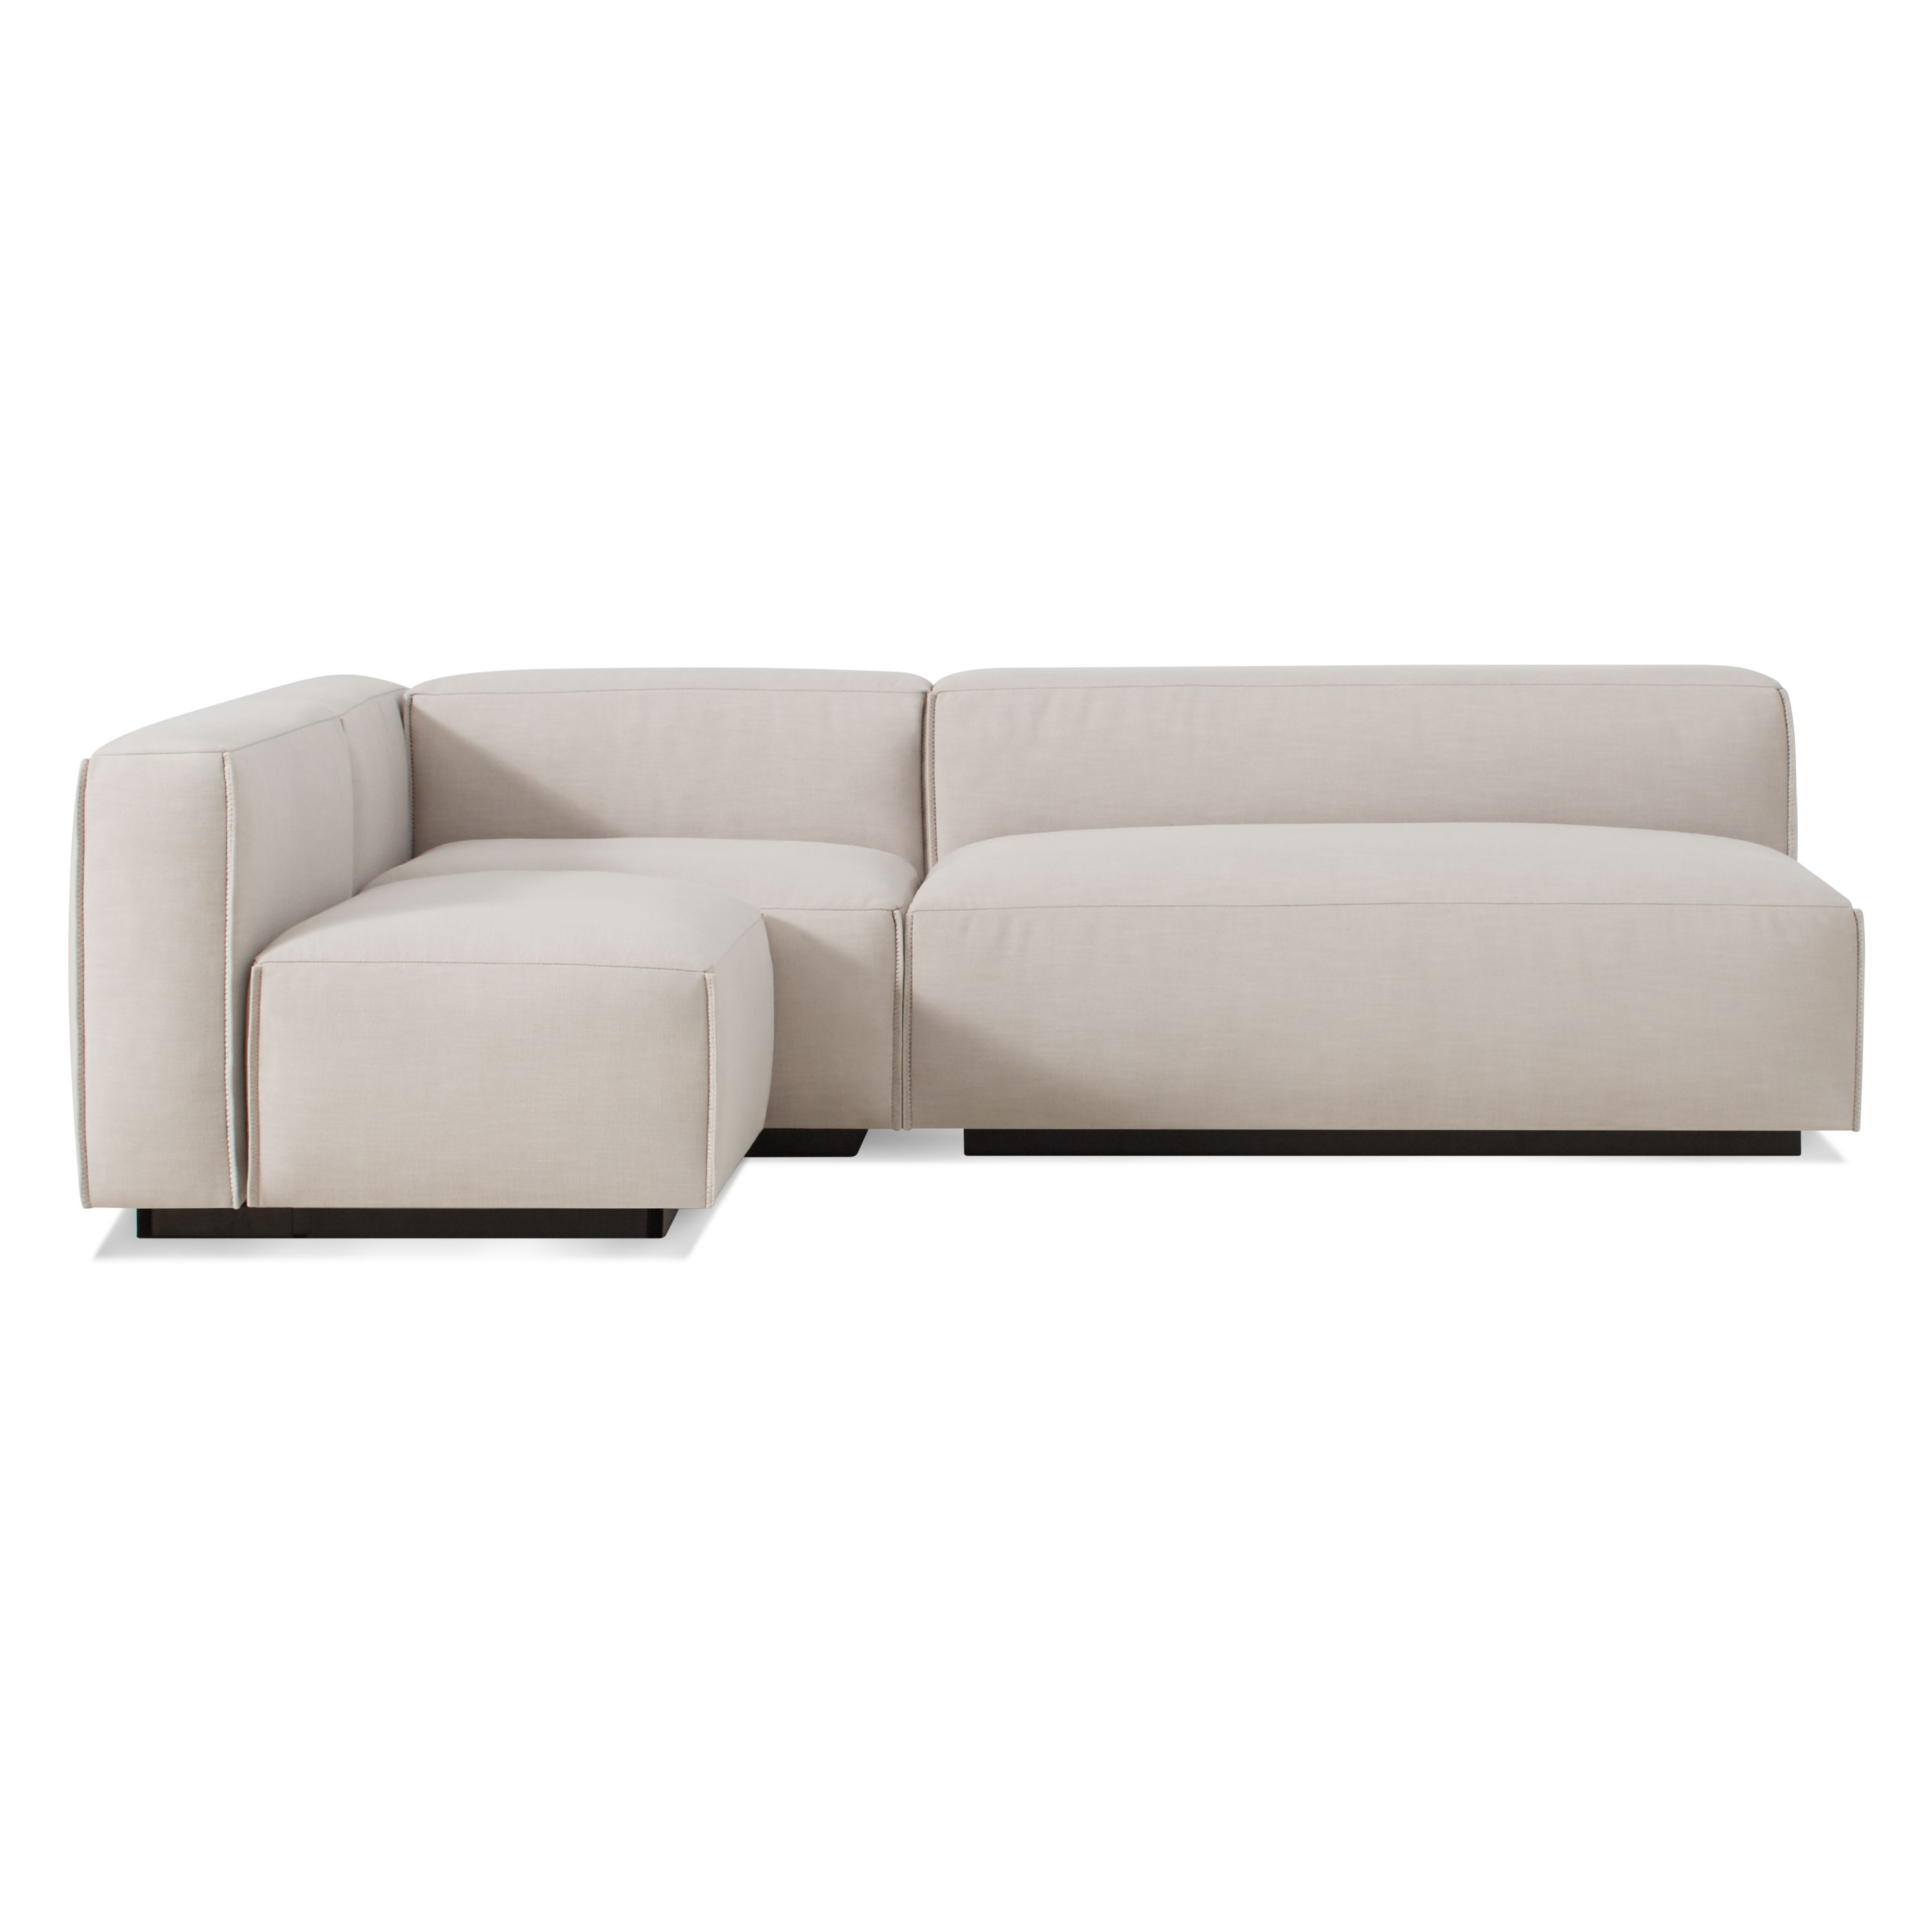 Blu Dot Pertaining To Armless Sectional Sofas (View 4 of 20)